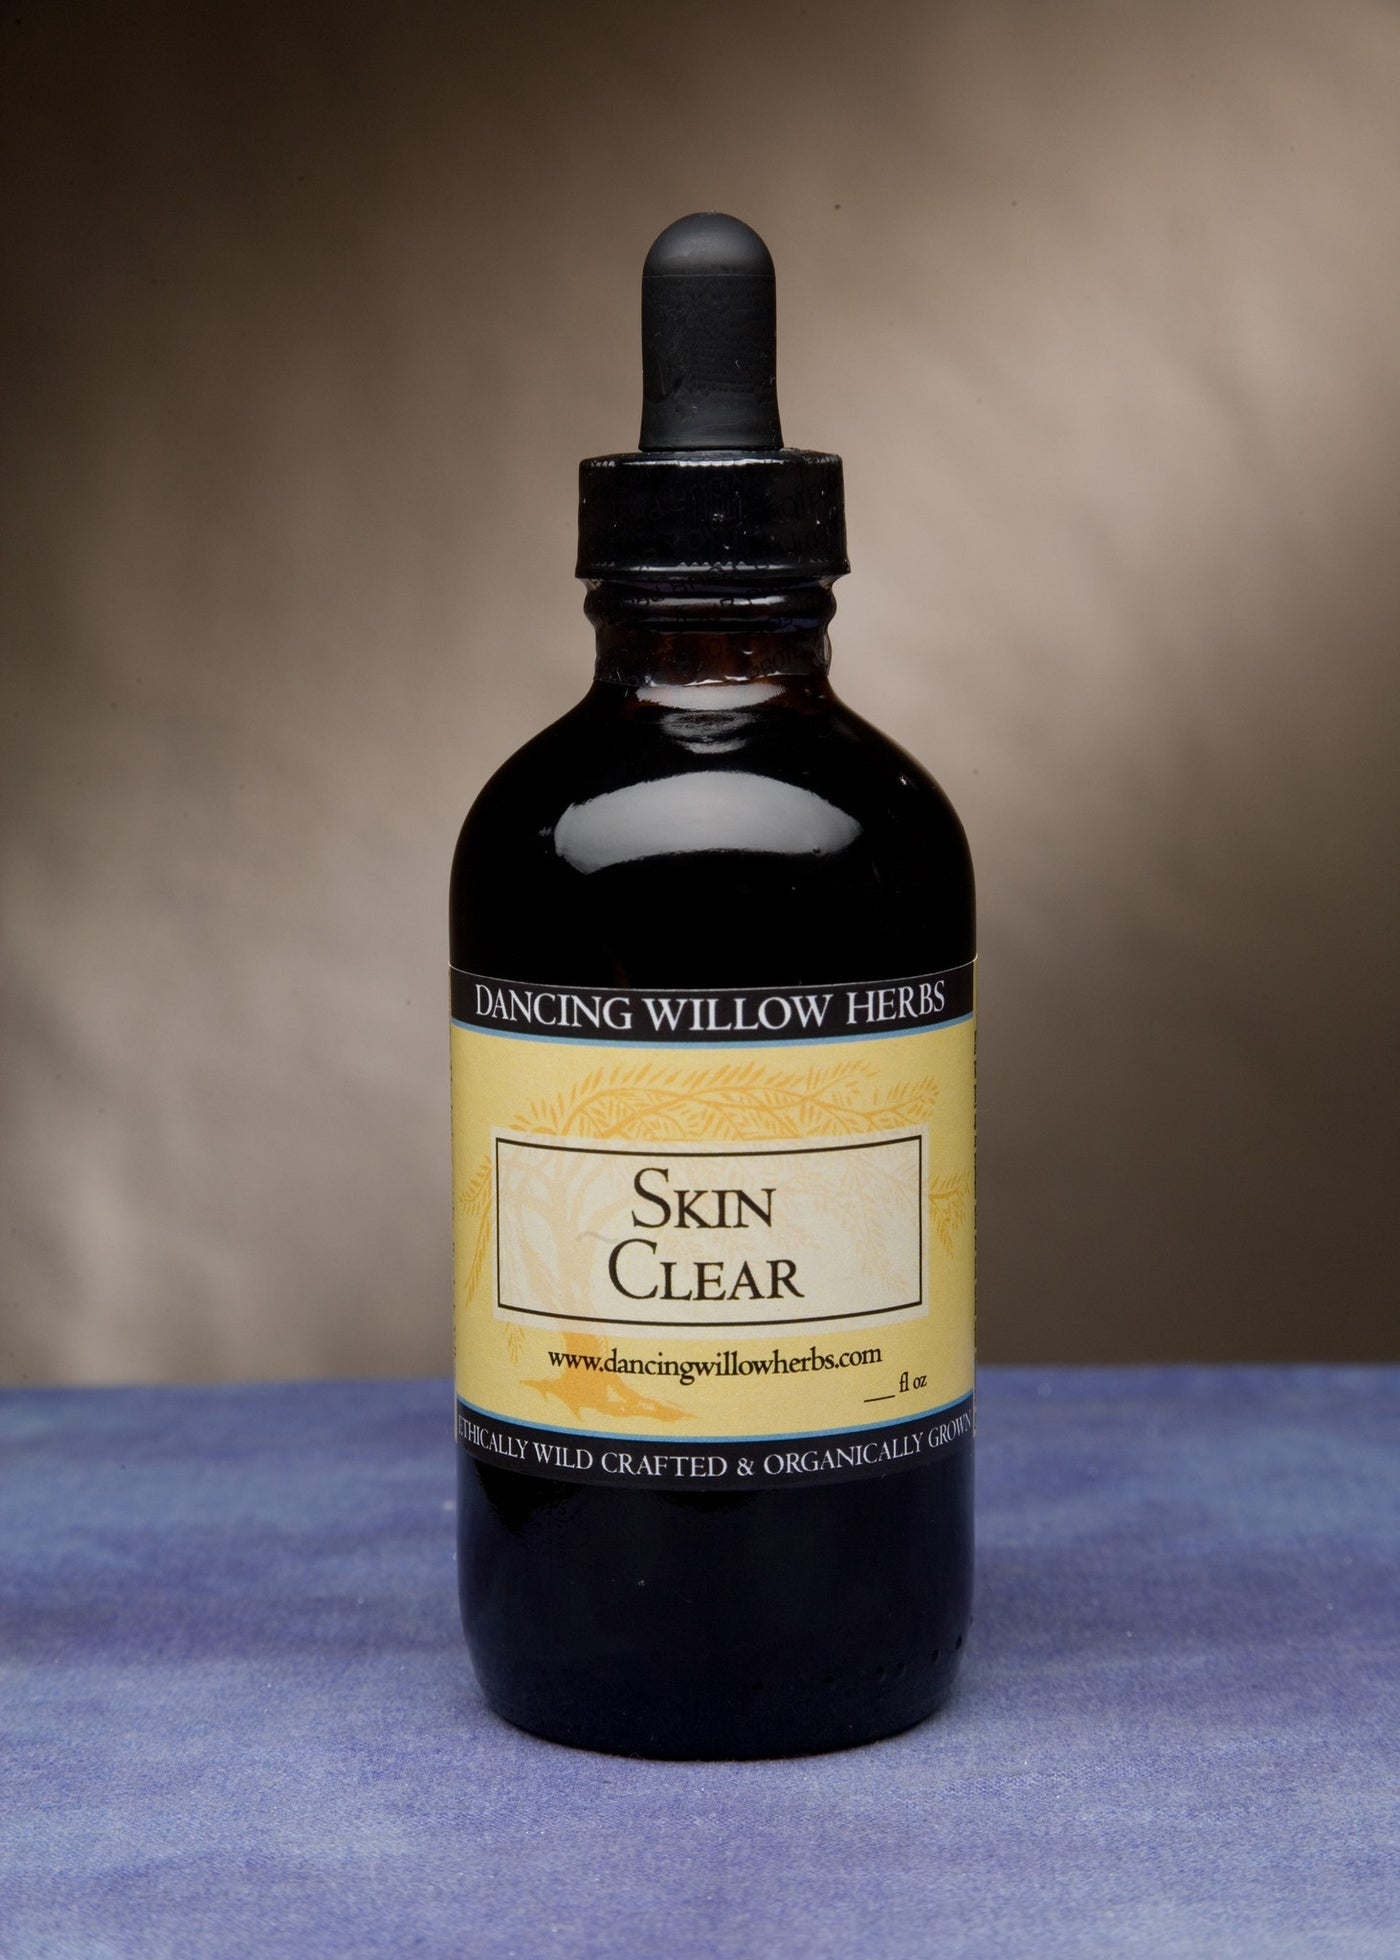 Skin Clear - Dancing Willow Herbs Herbal Formulas - herbal formulas